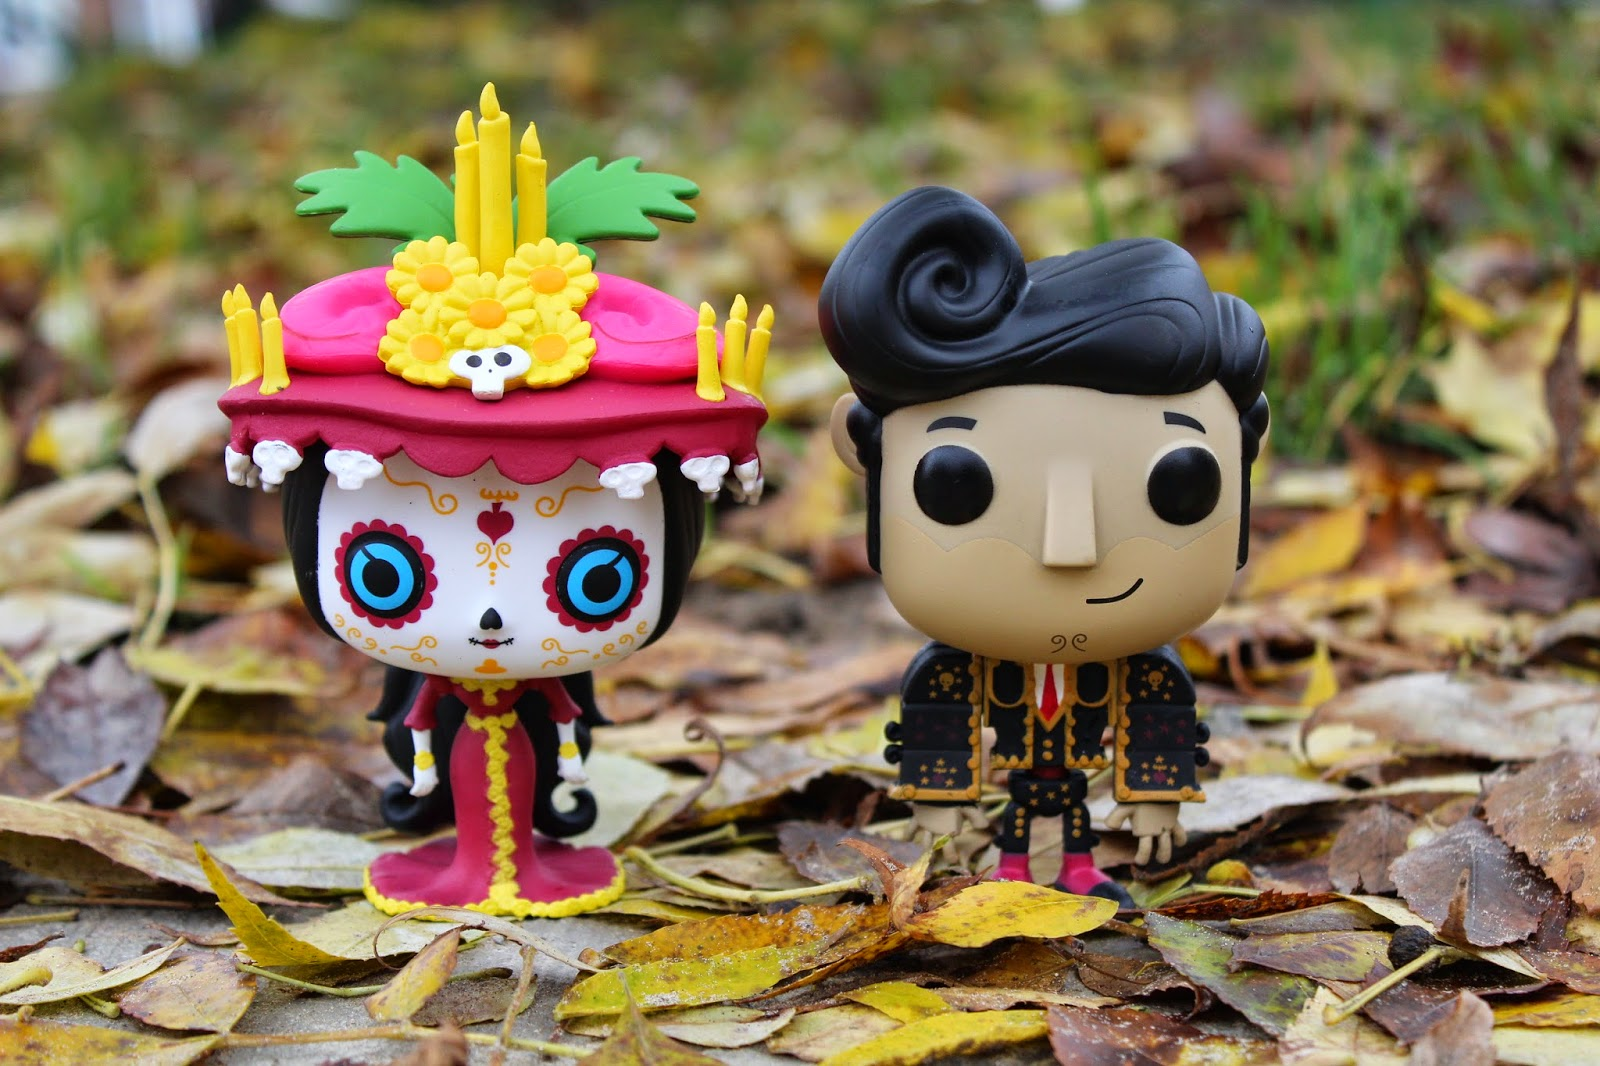 The Book Of Life Film Review, The Book of Life, The Book of Life Movie Review, The Book of Life Movie, The book Of Life Review